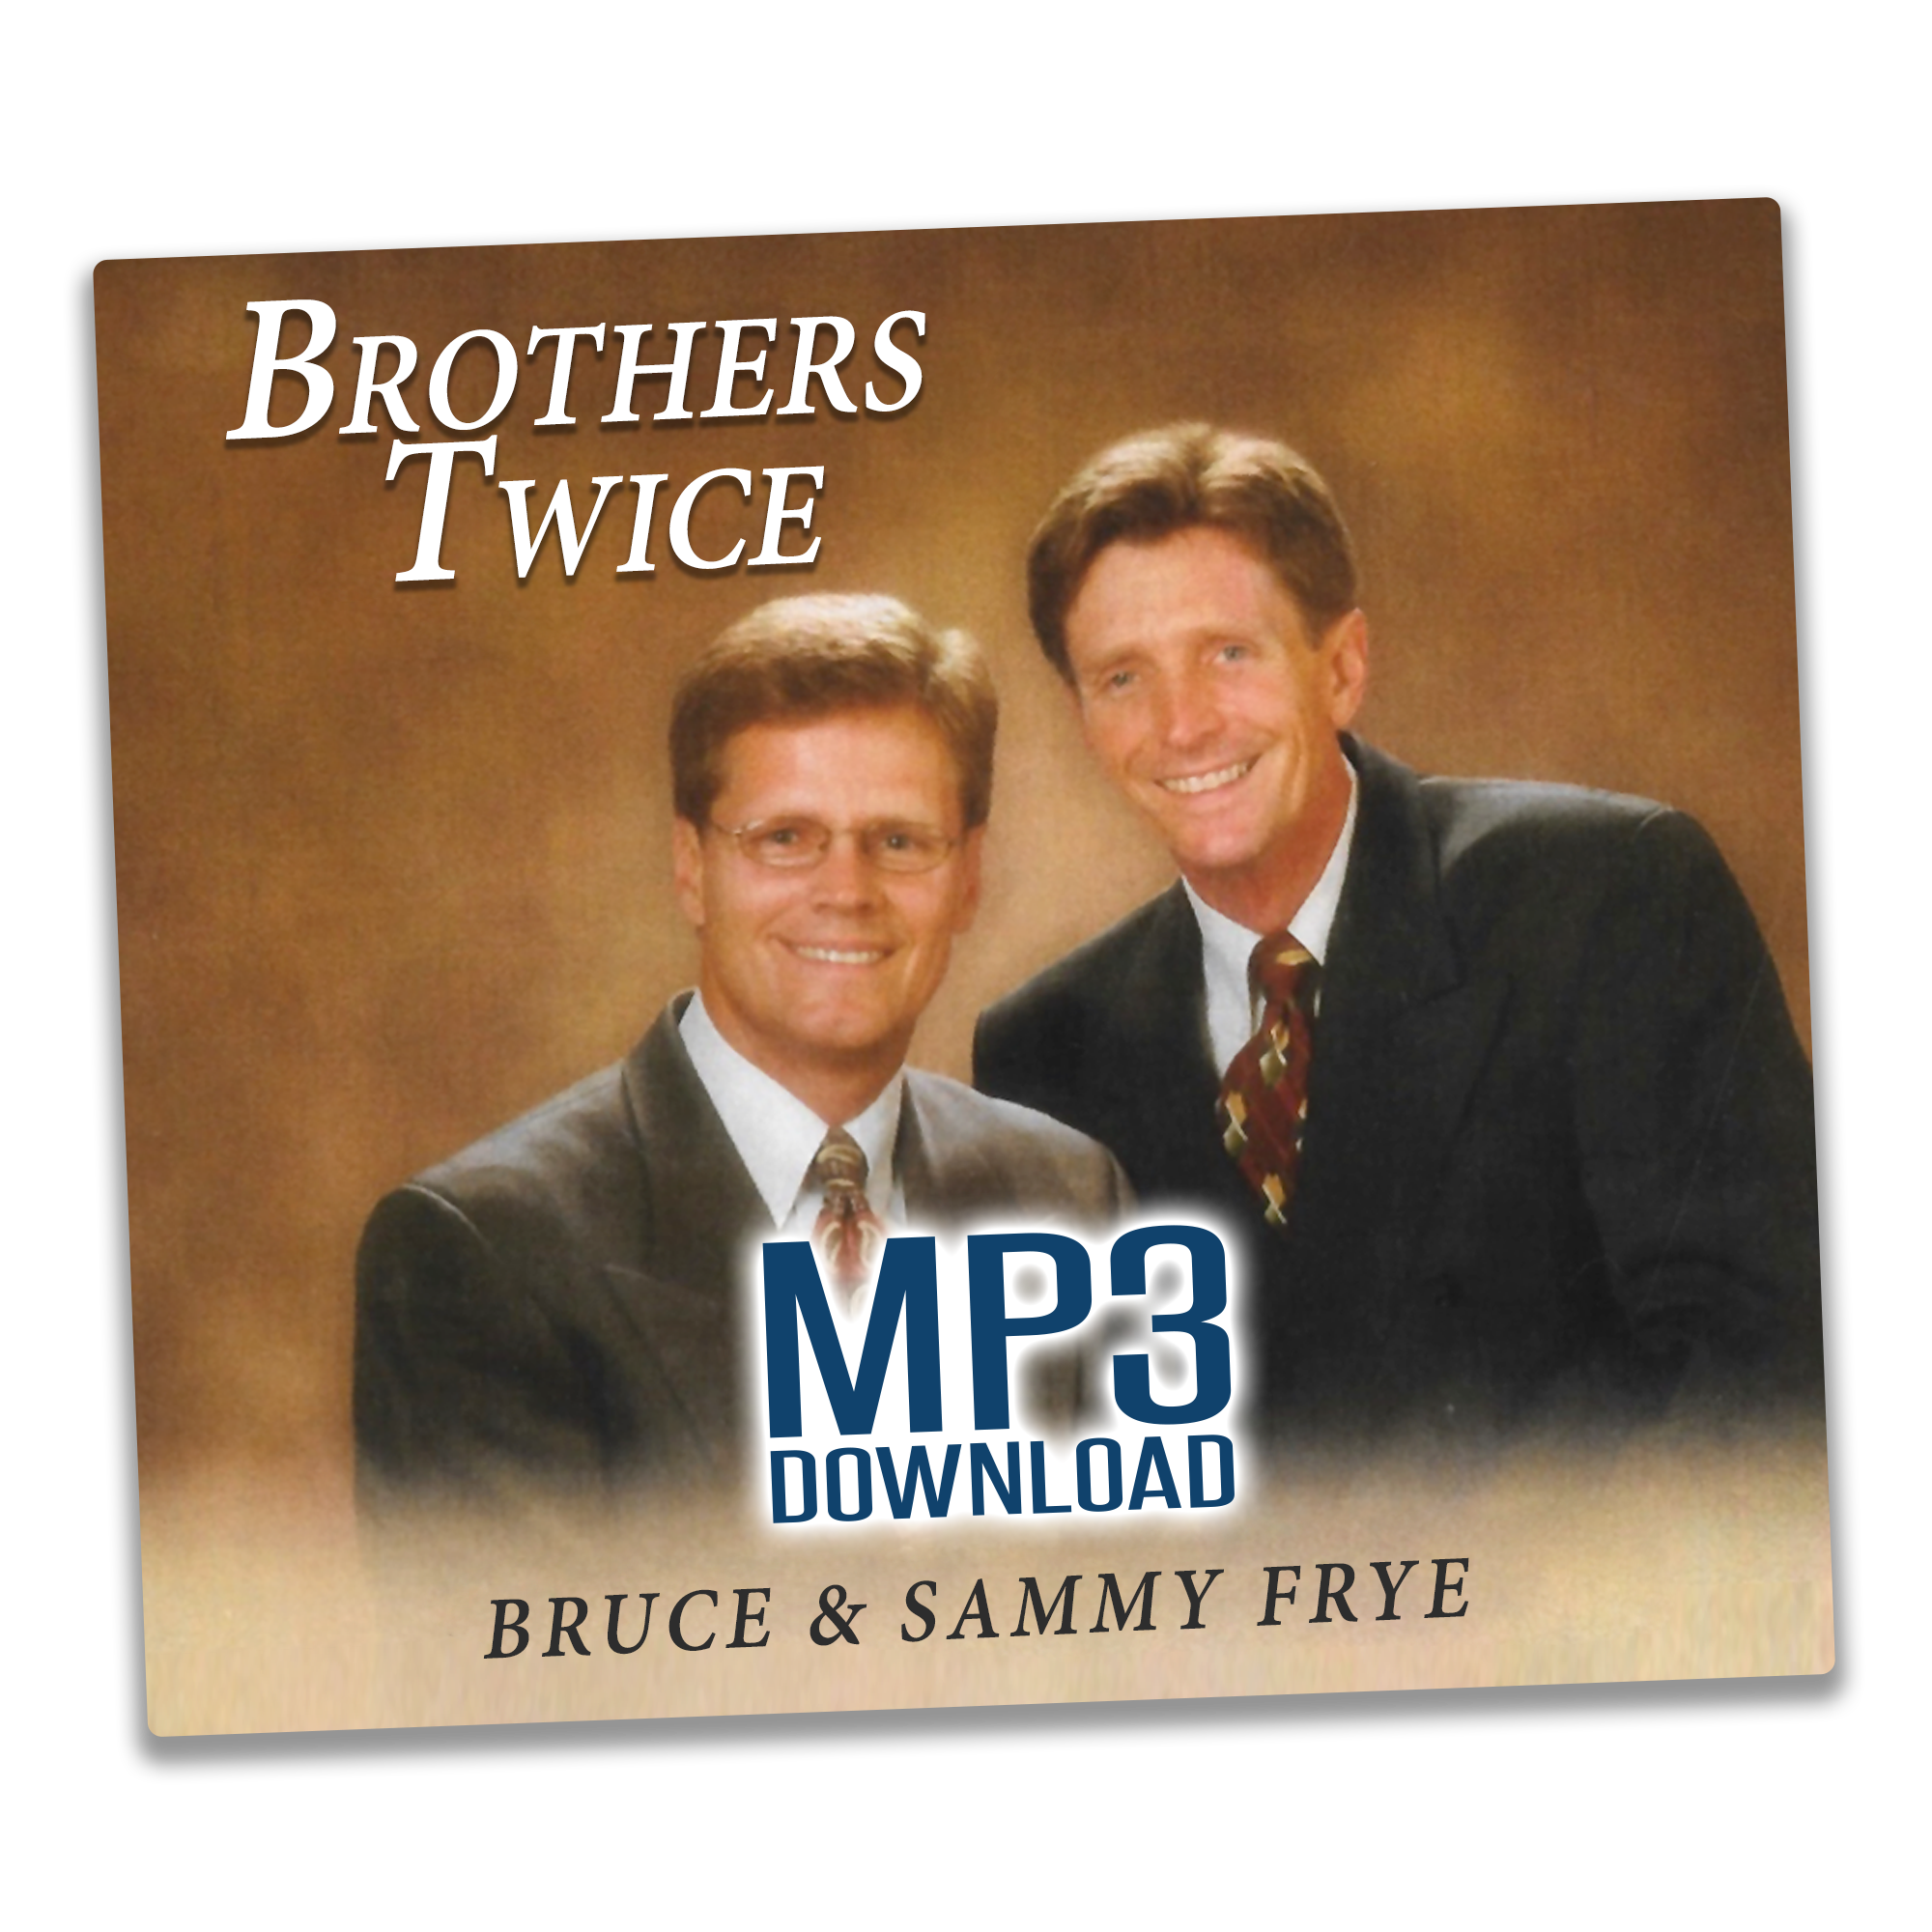 Brothers Twice - Track 1